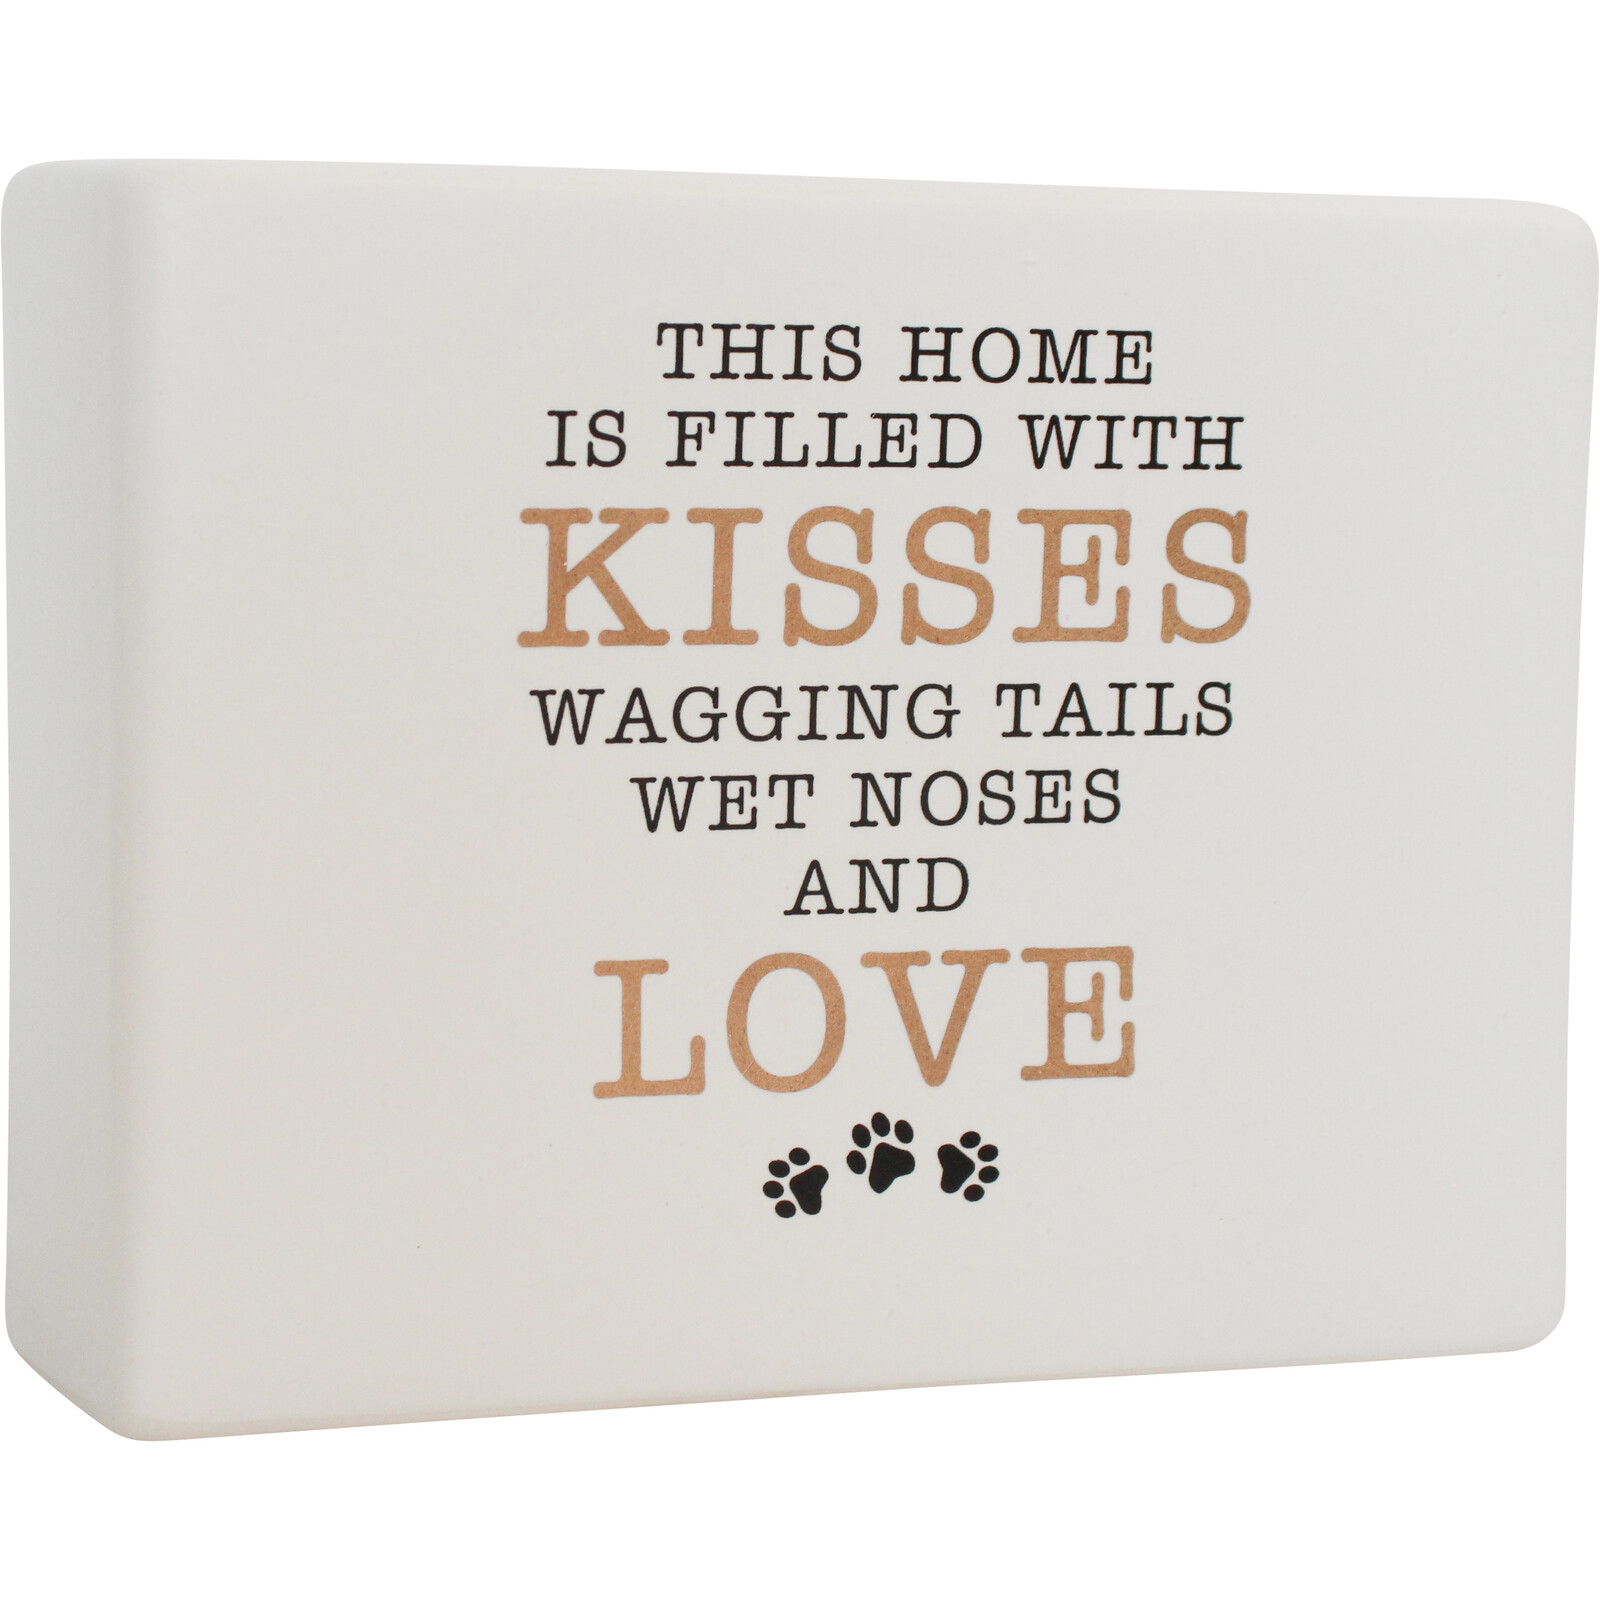 Ceramic Sign Kisses and Tails